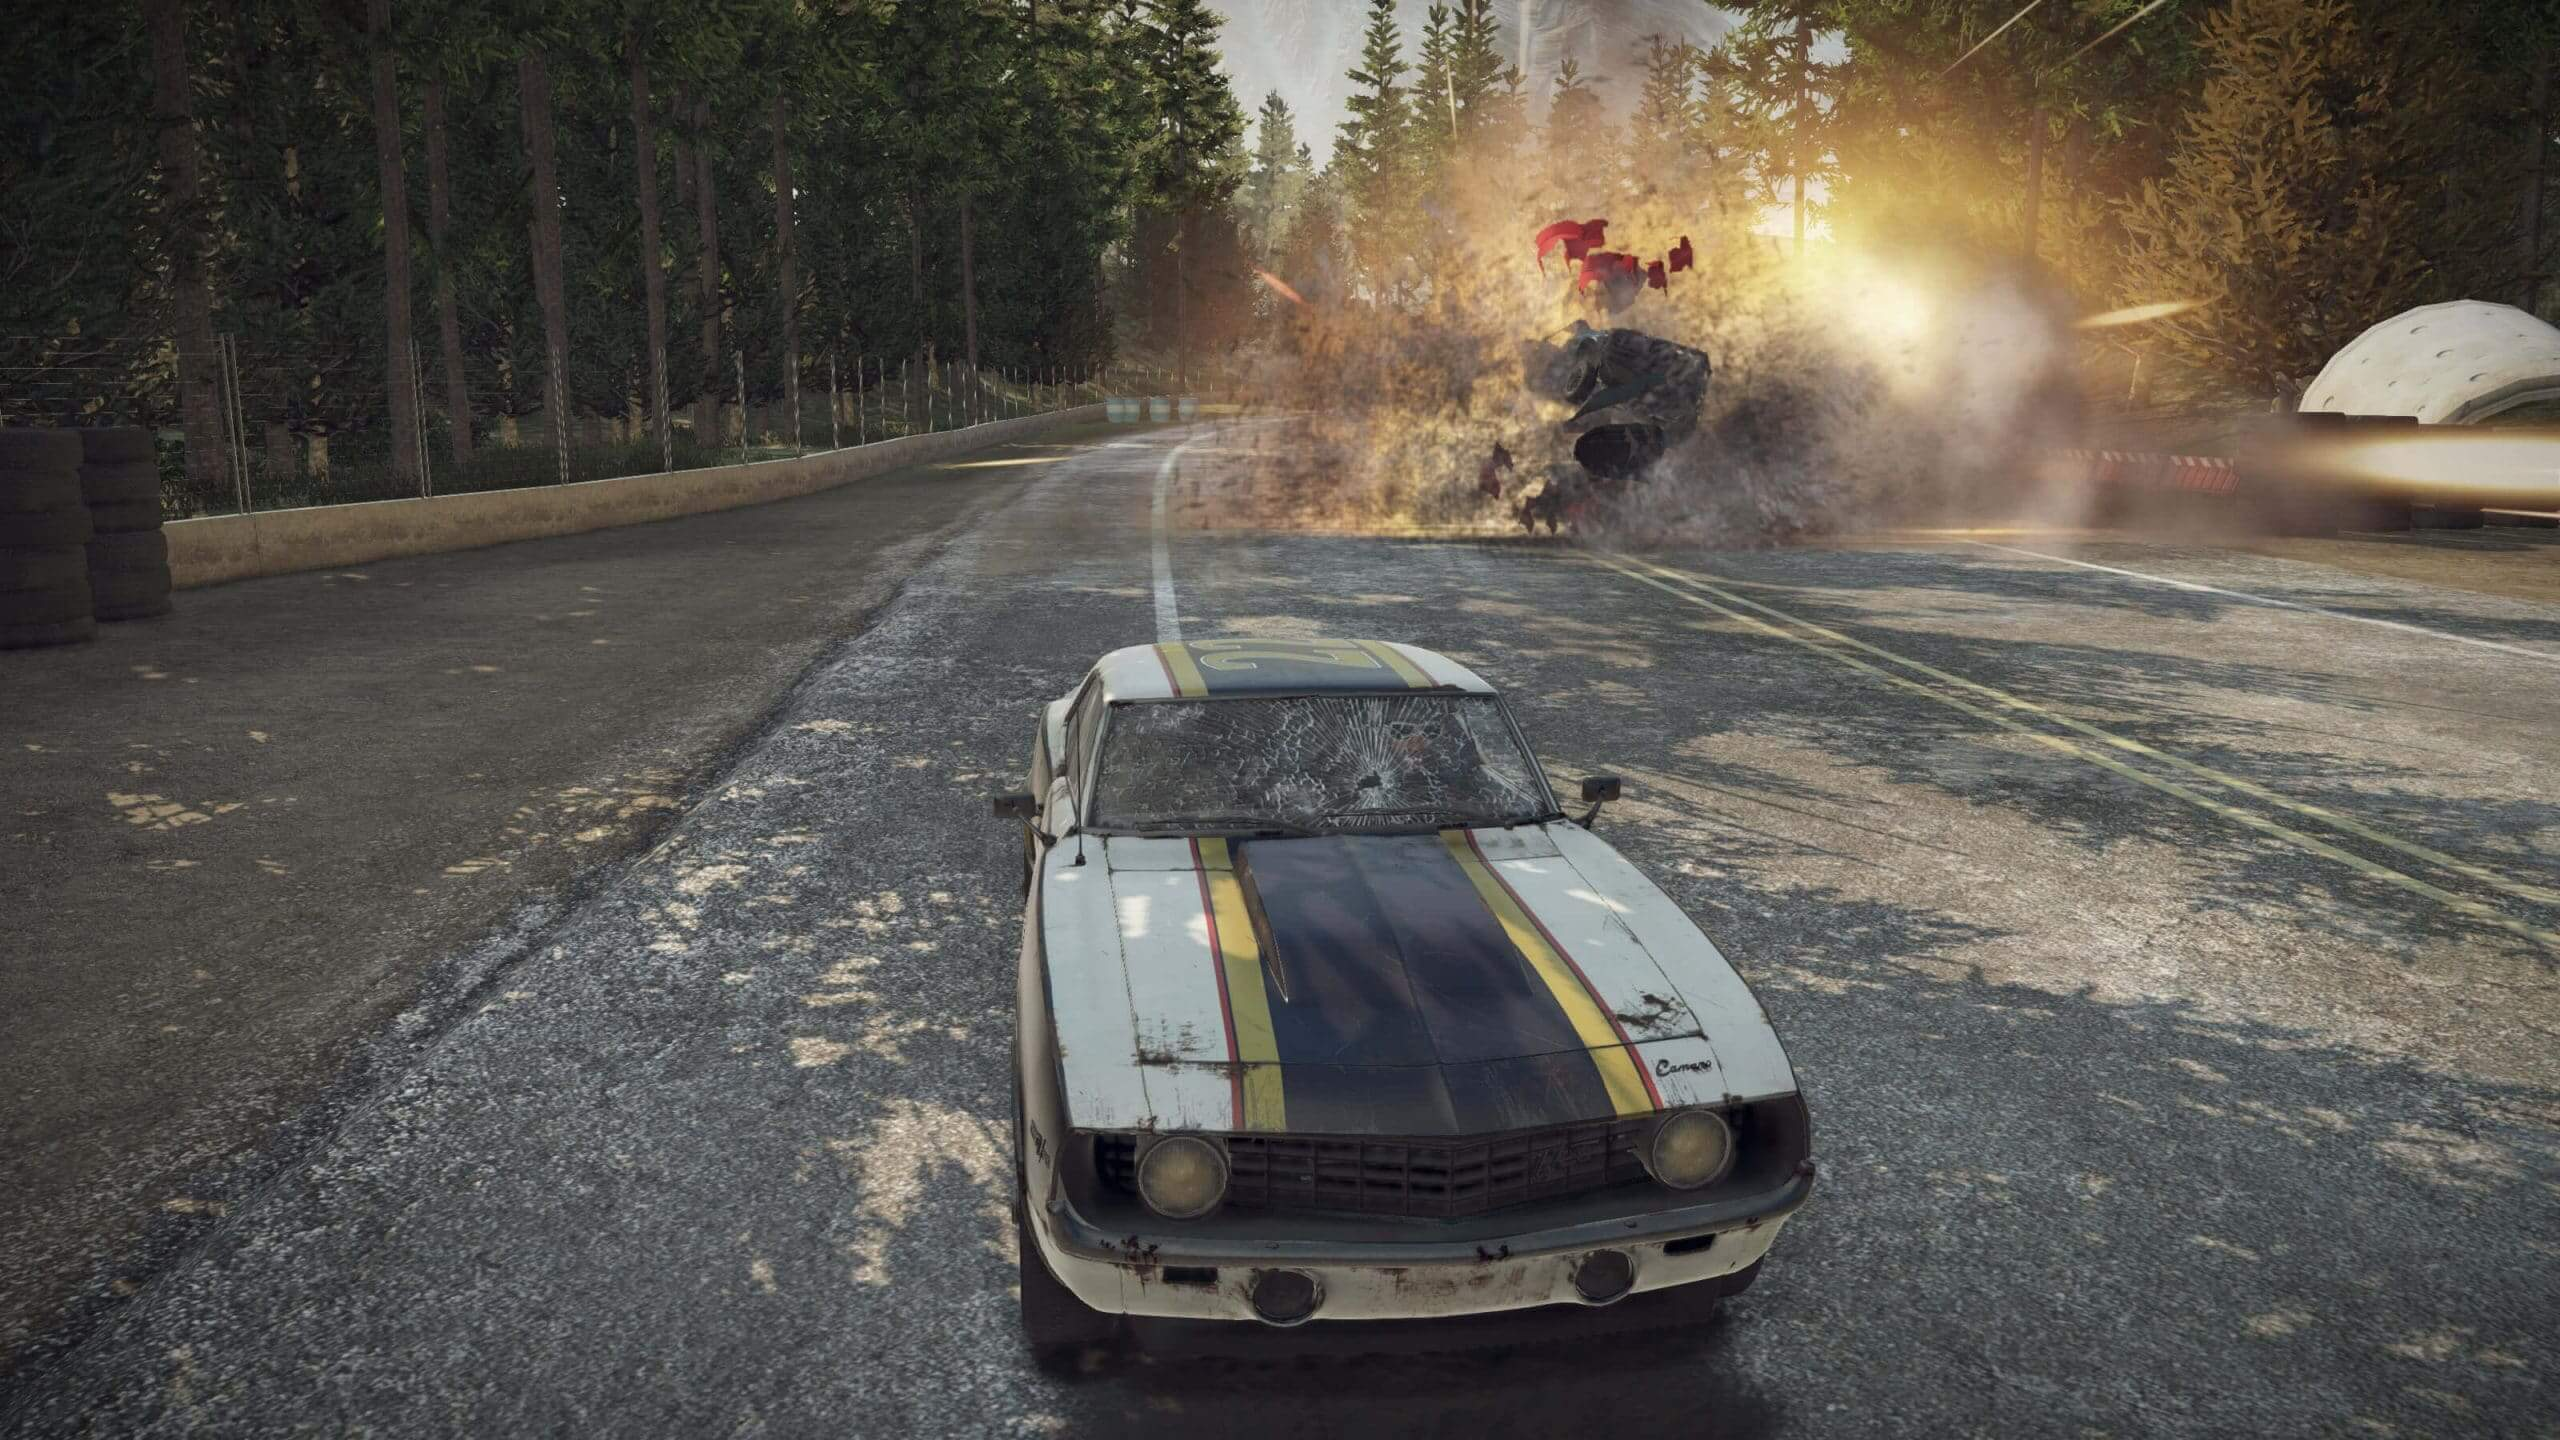 FlatOut 4 Total Insanity Download Free PC + Crack - Crack2Games